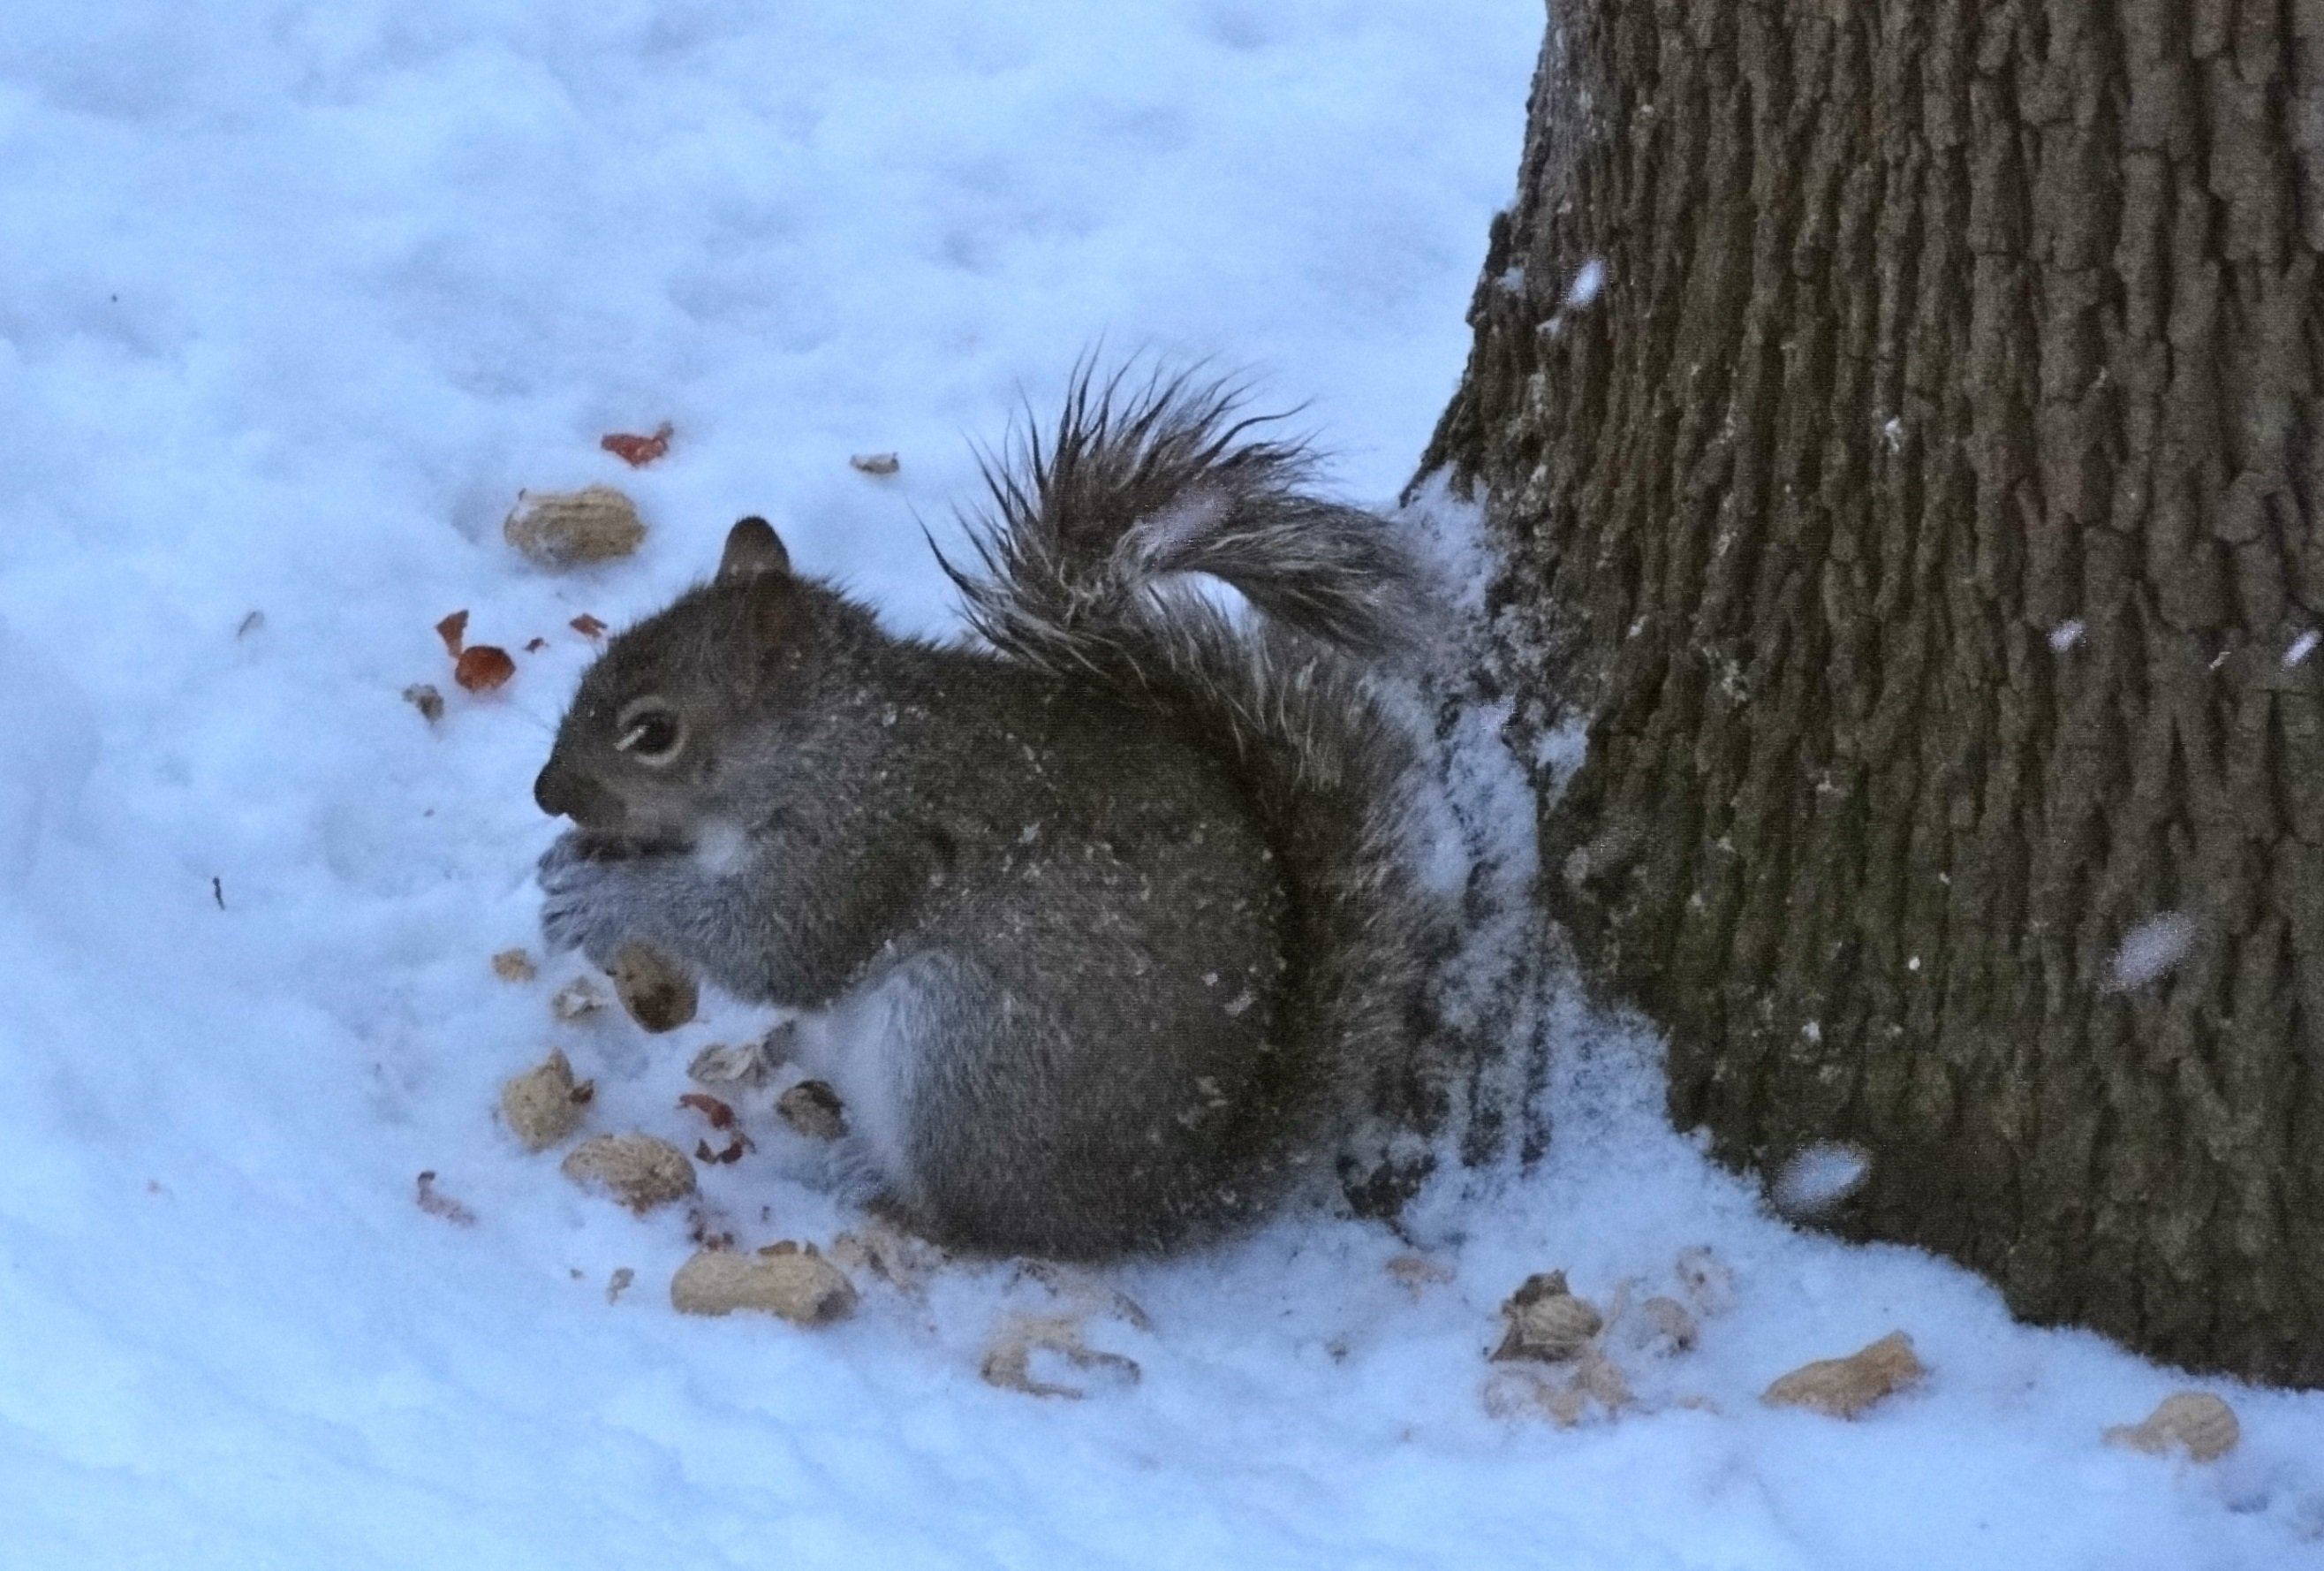 A grey squirrel eating nuts in snow